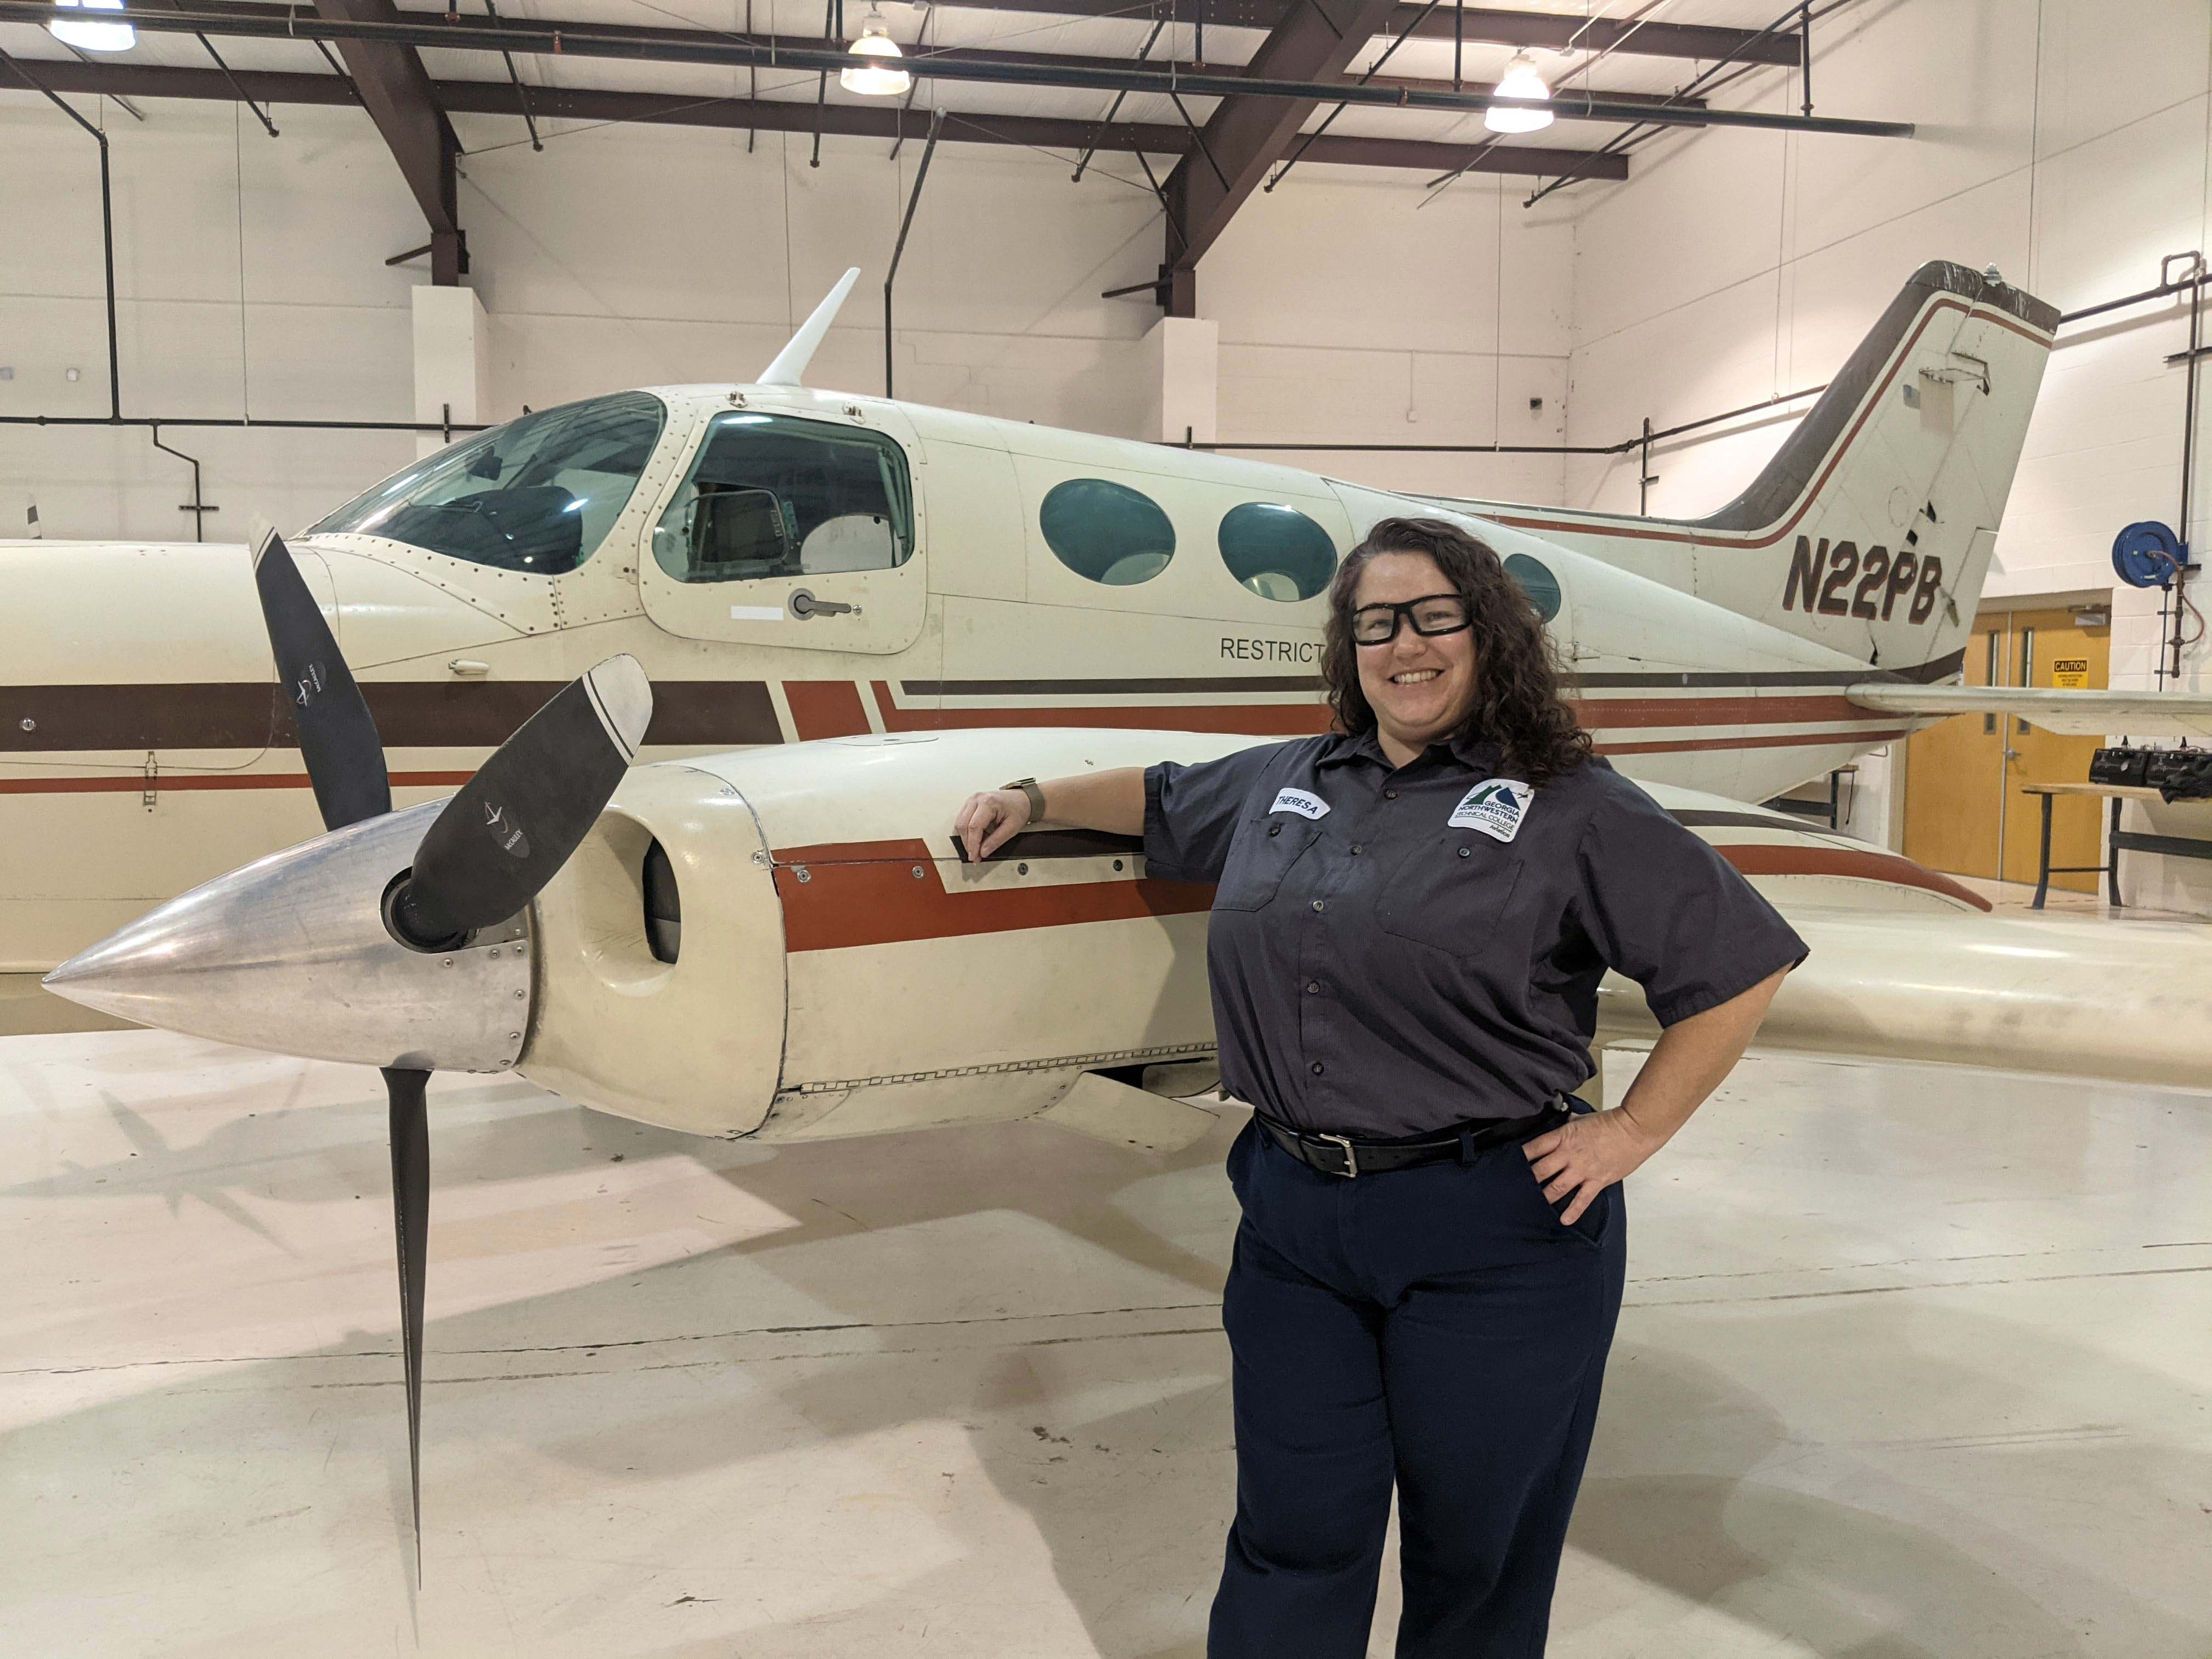 GNTC student Theresa Harper stands next to a plane in the GNTC Aviation Training Center hangar. Harper is the recipient of the HAI/WAI Maintenance Technician Certificate Scholarship and will receive recognition at the 32nd Annual International Women in Aviation Conference in March.